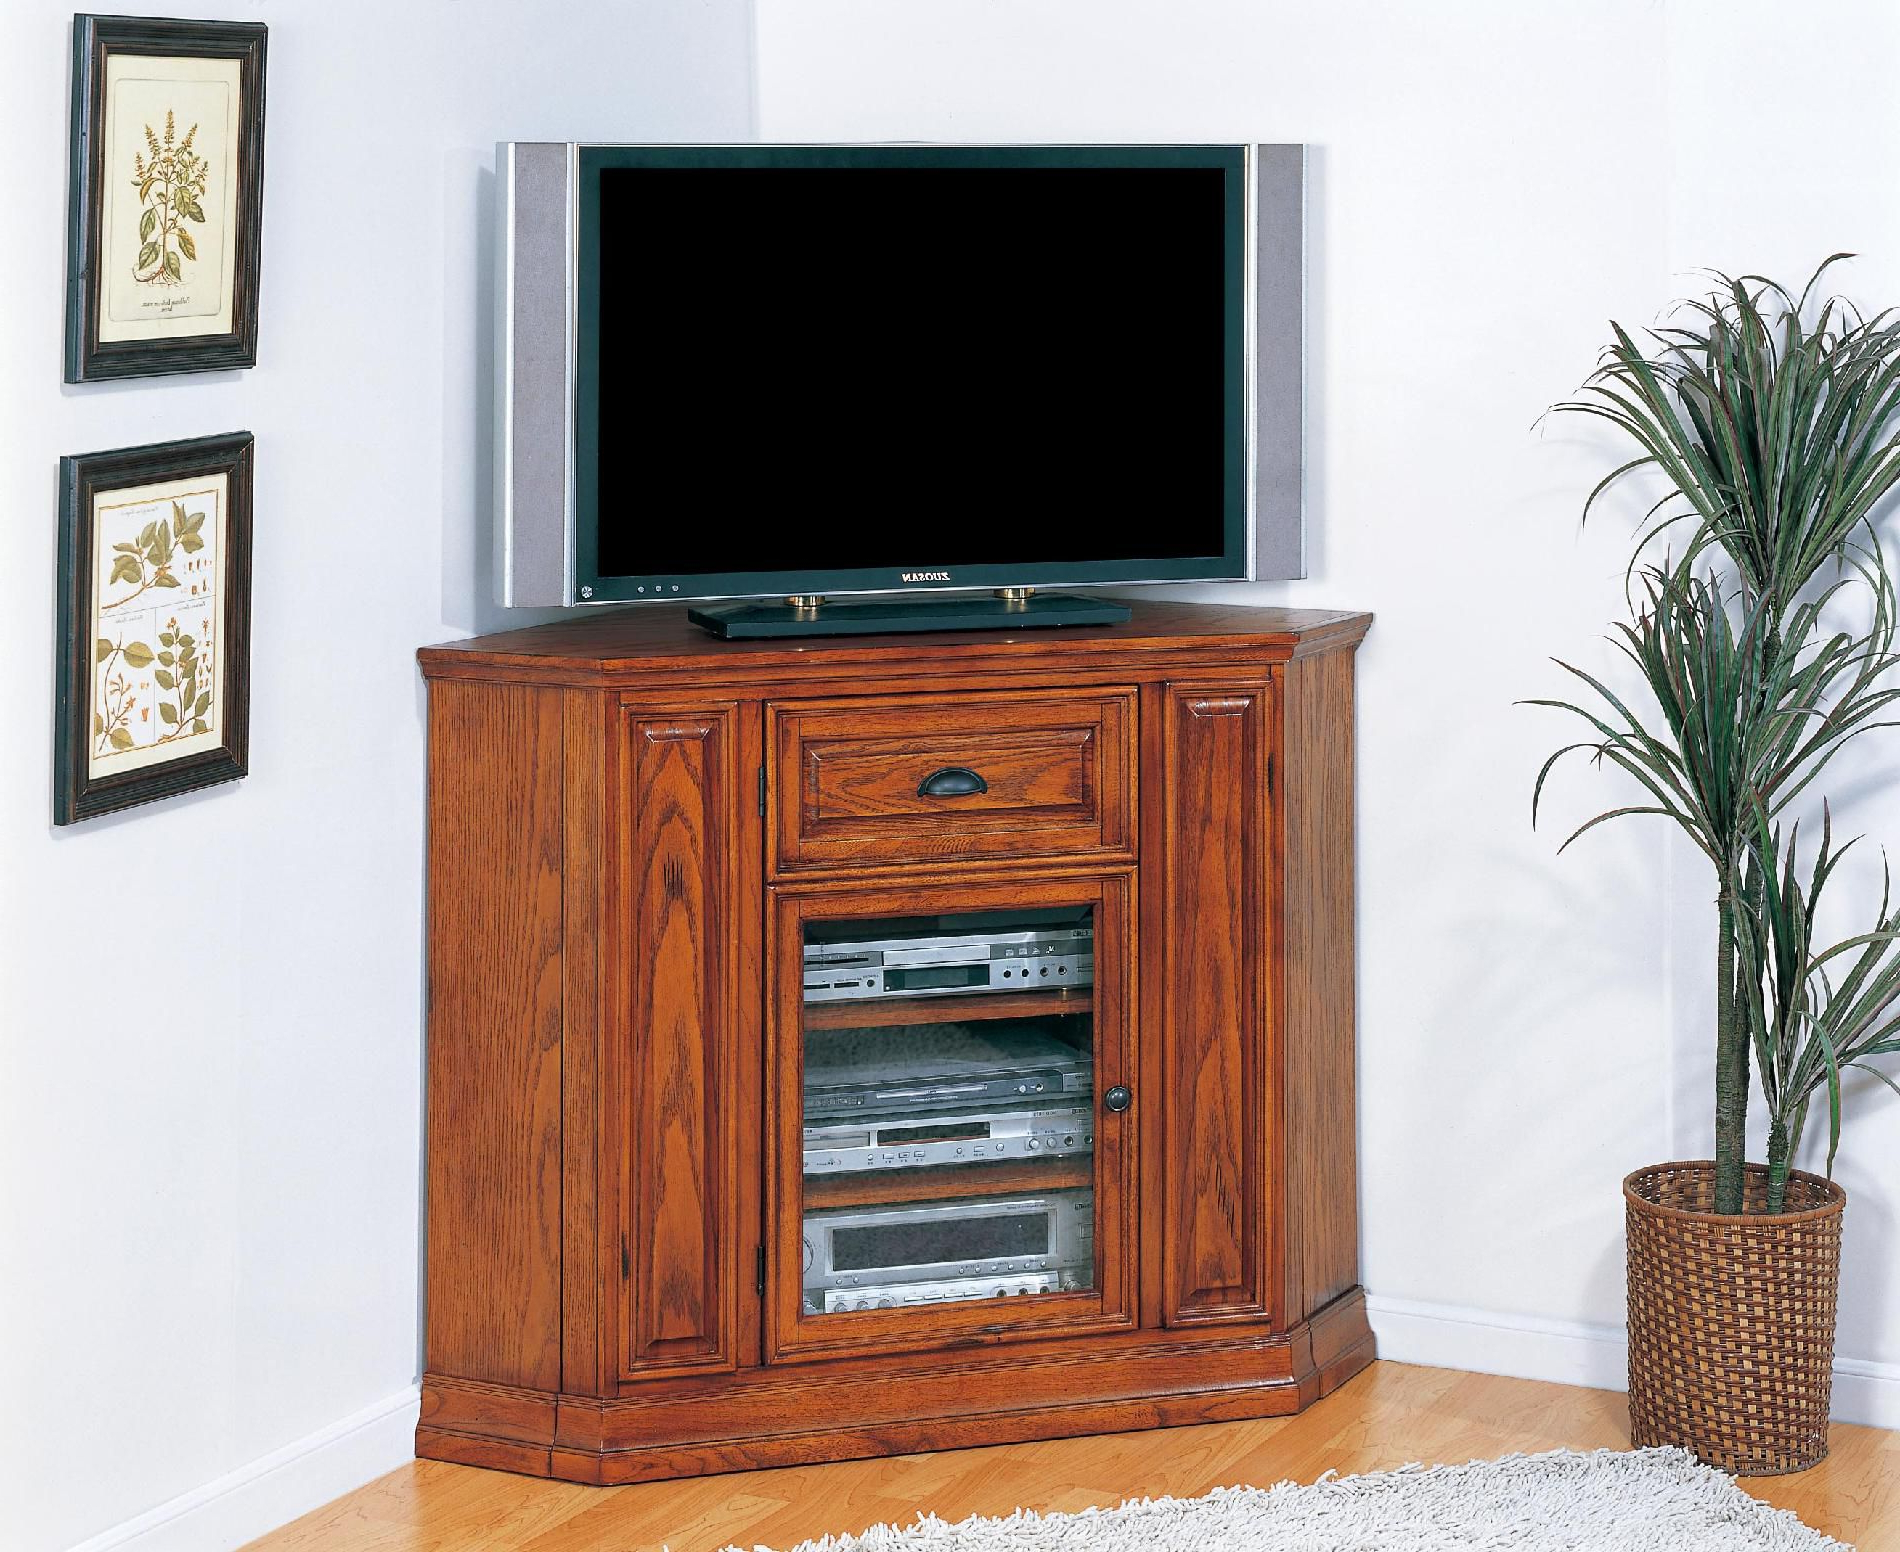 Fashionable Tv Stand With Mount Corner Stands Wood Armoire Flat Panel Fireplace With Regard To Tv Cabinets Corner Units (View 19 of 20)